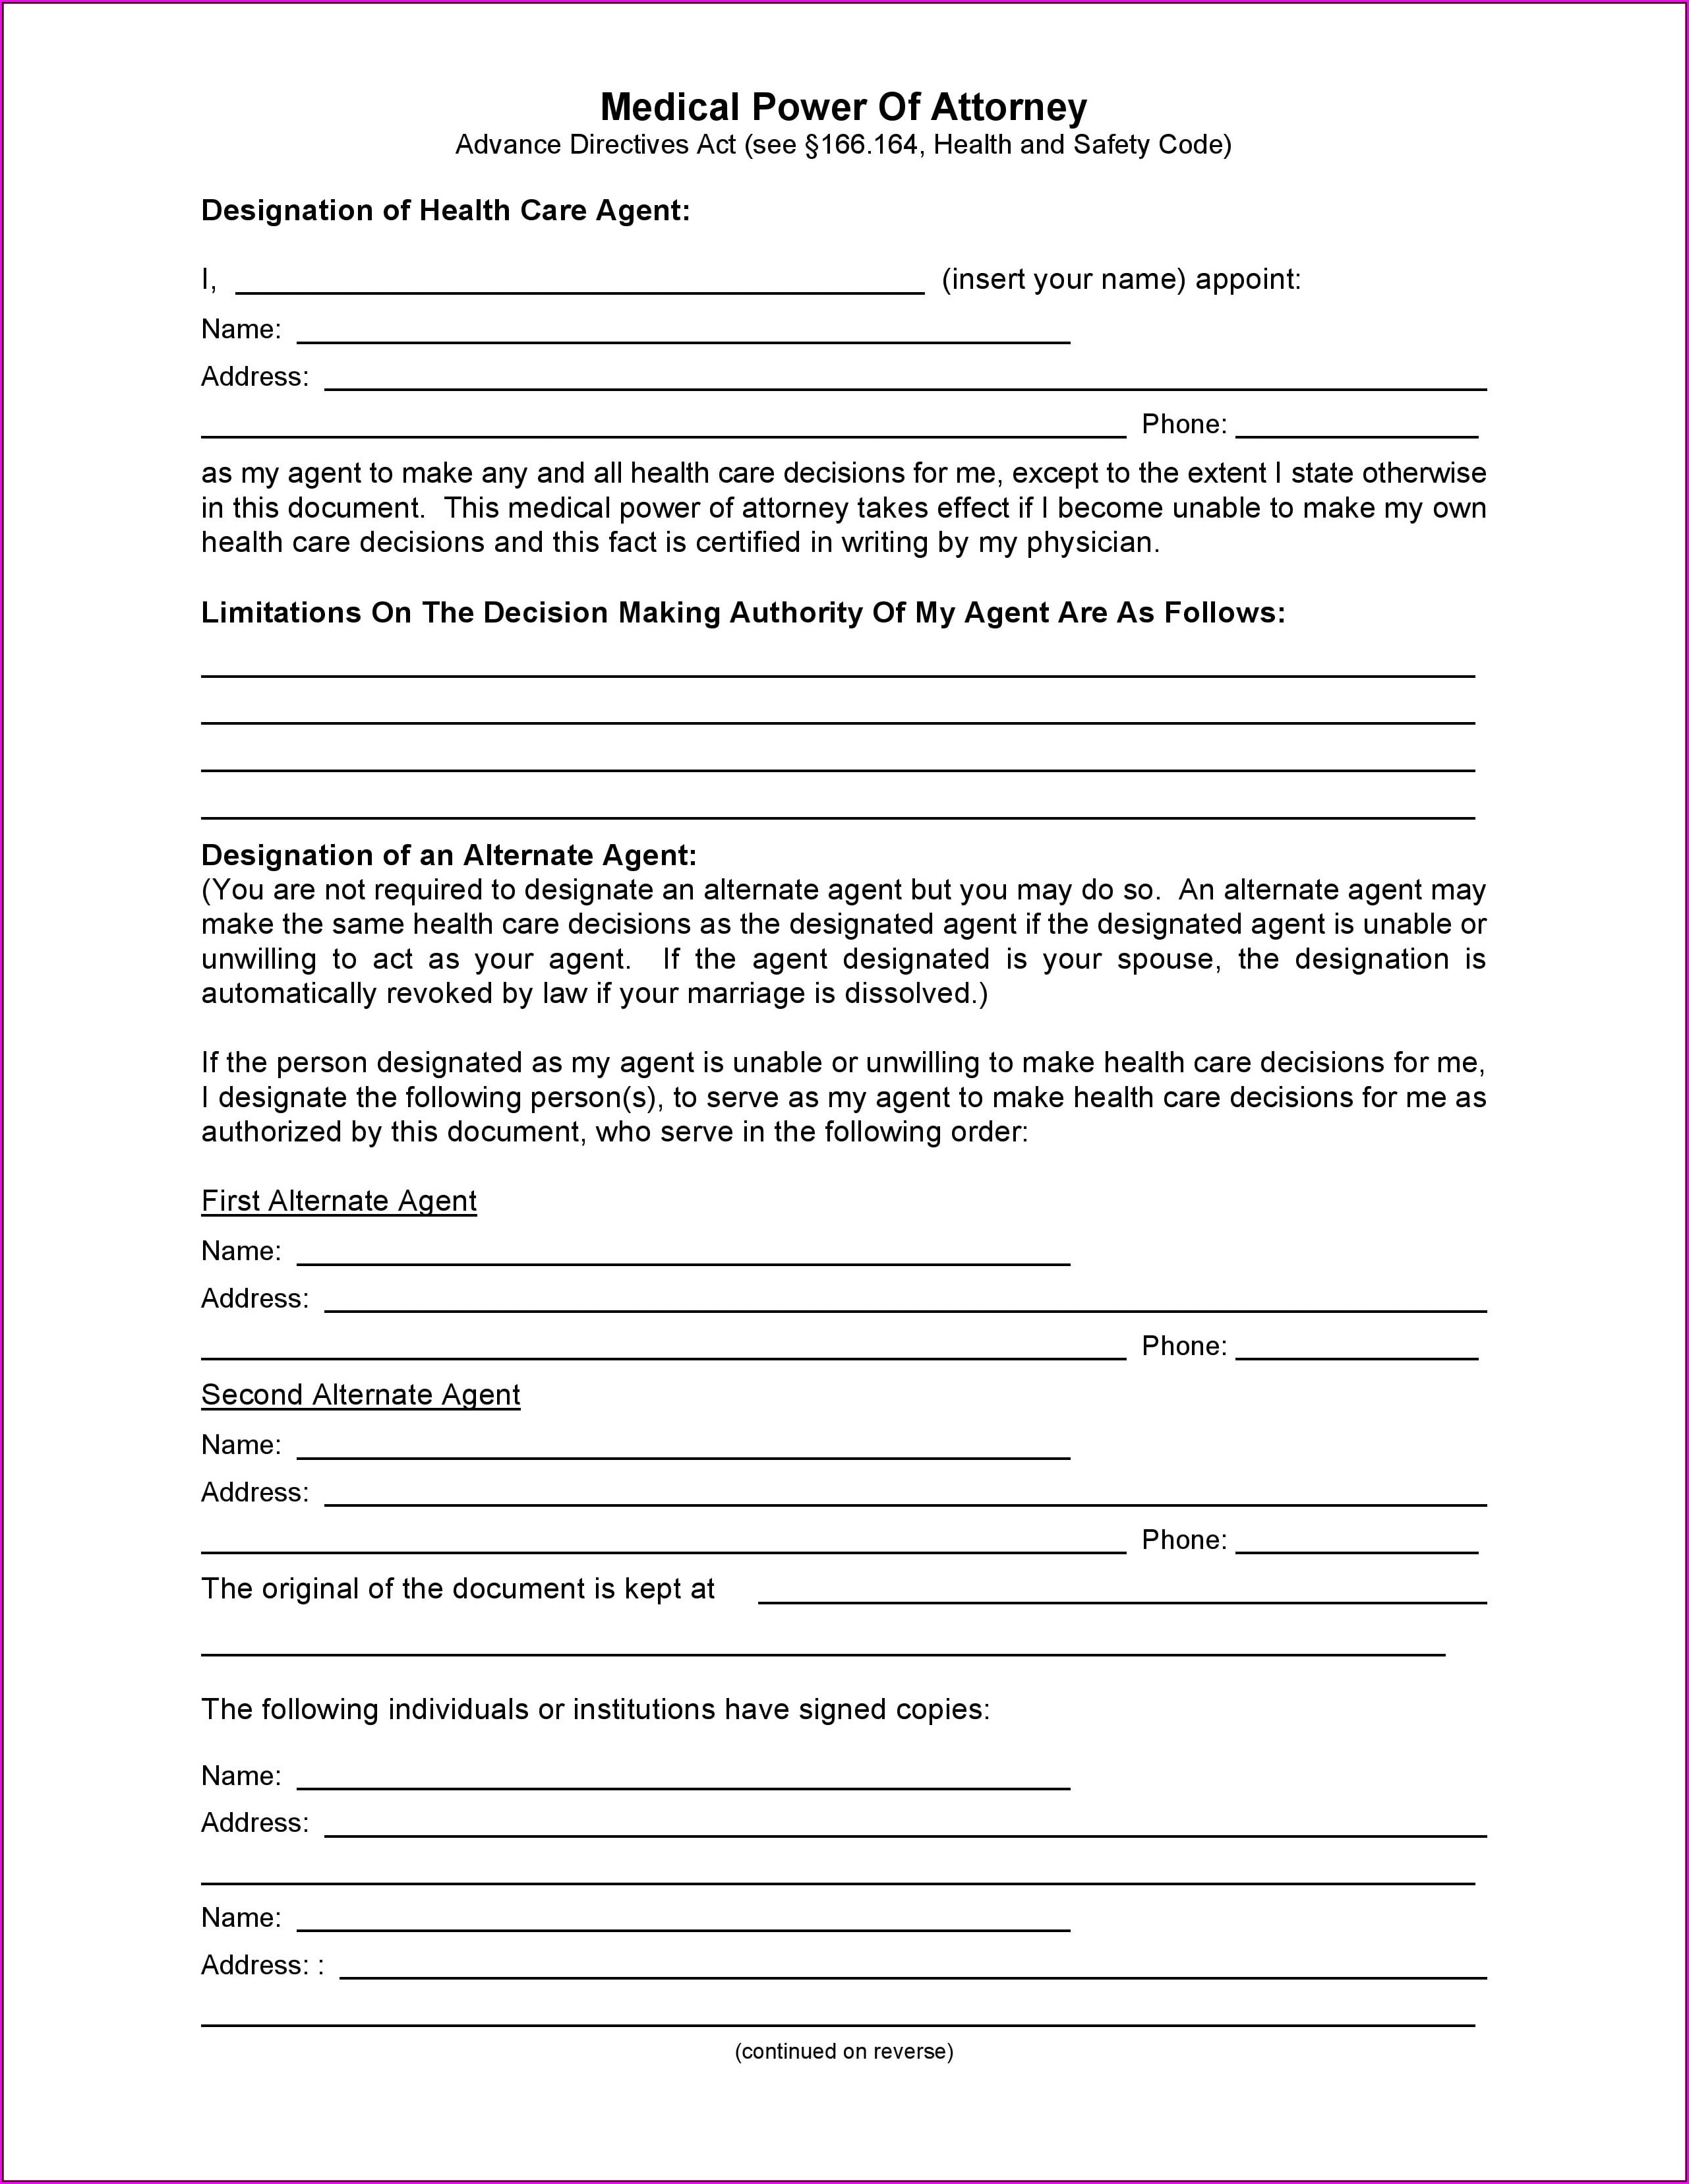 Medical Power Of Attorney Form Free Download